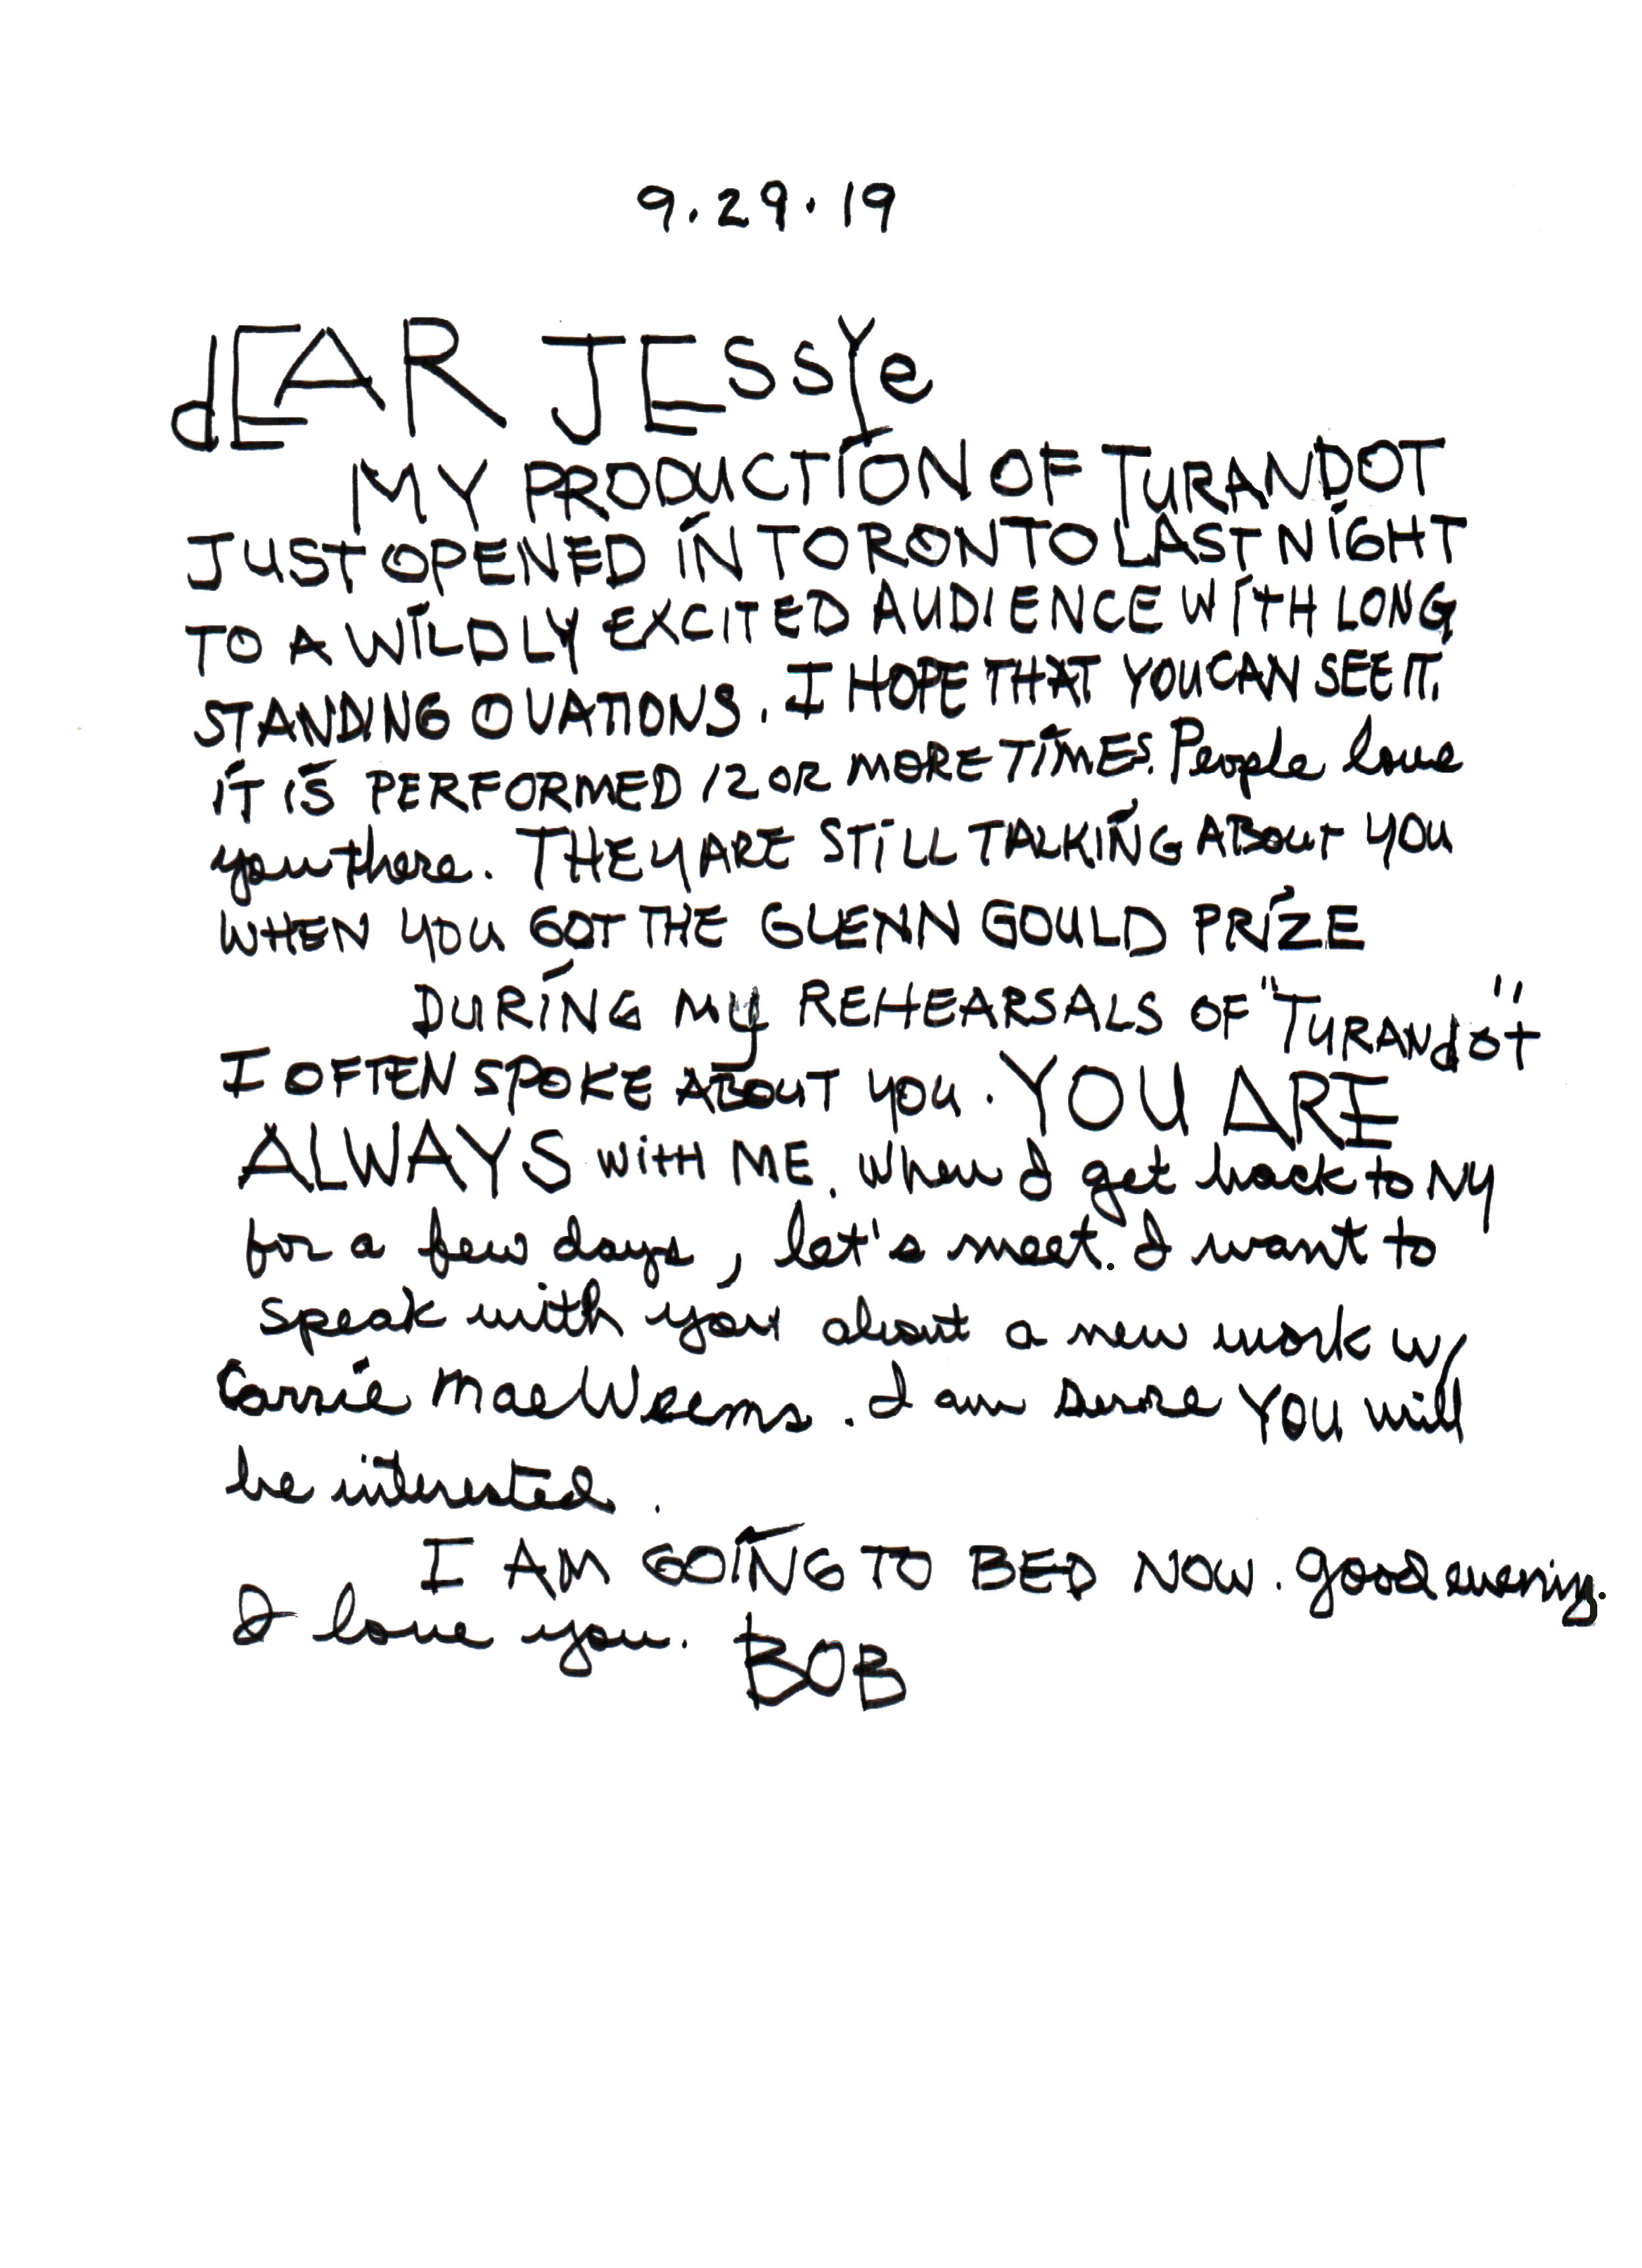 Robert Wilson wrote this letter to Jessye Norman on September 29, 2019, after his opening of   Turandot     at the Canadian Opera Co. in Toronto.